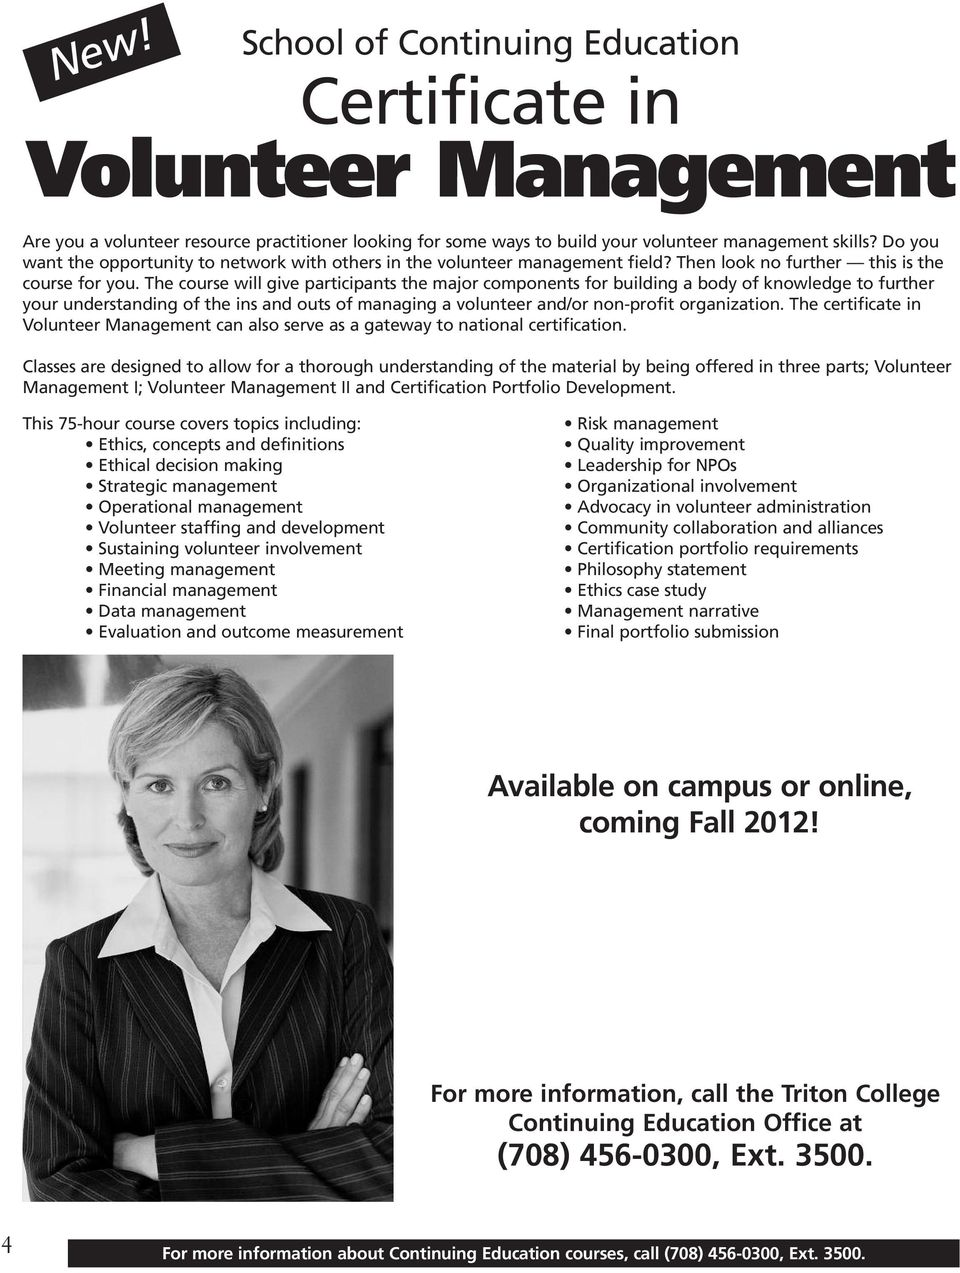 The course will give participants the major components for building a body of knowledge to further your understanding of the ins and outs of managing a volunteer and/or non-profit organization.